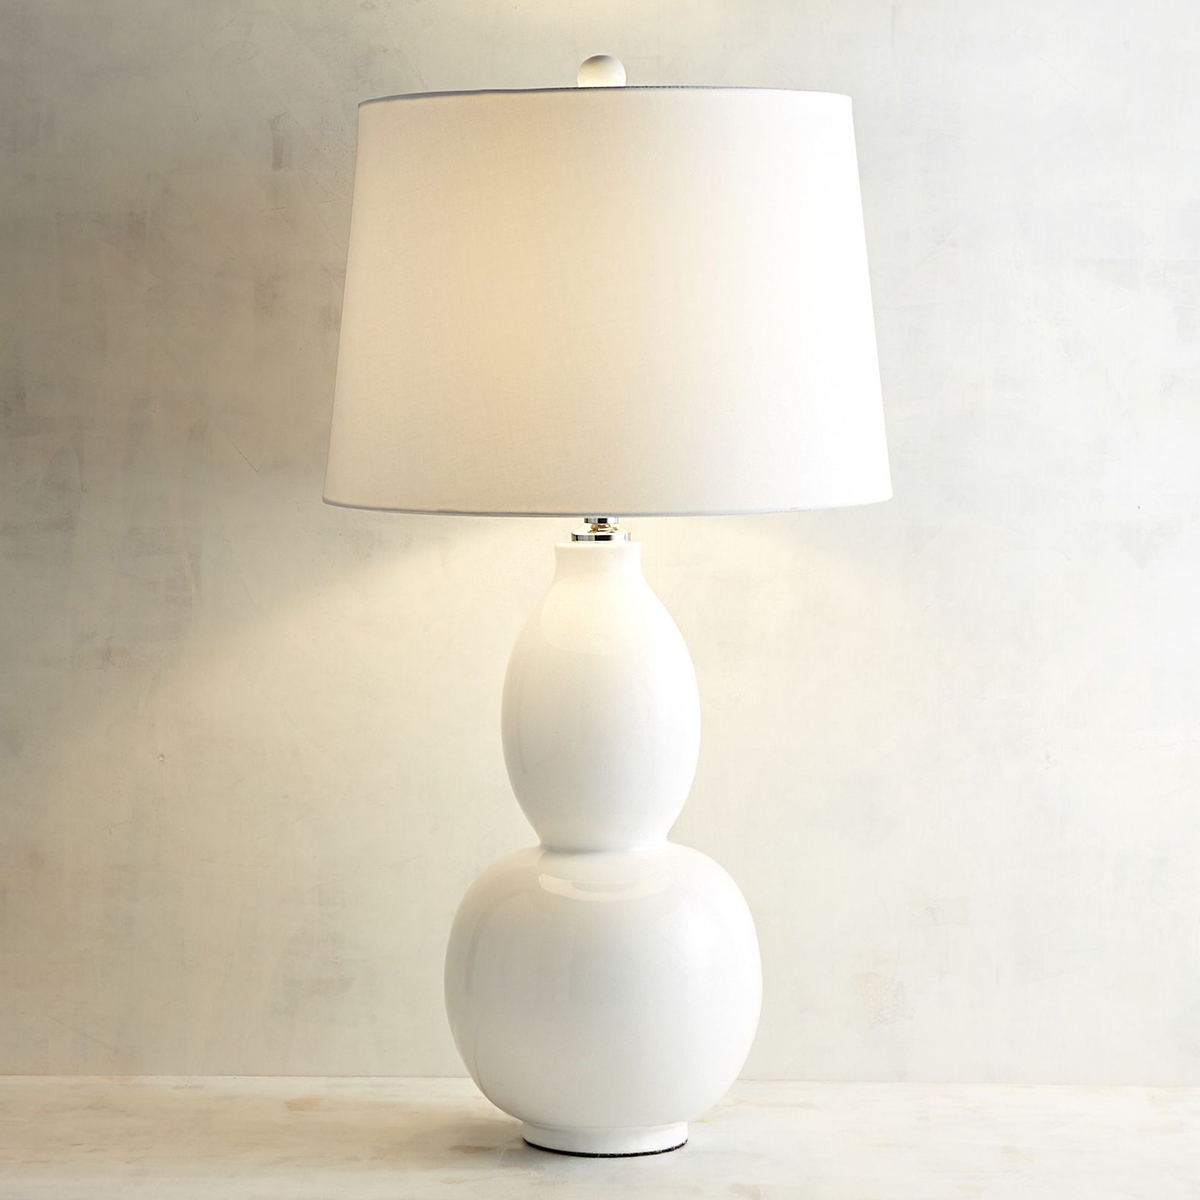 Sleek and modern white table lamp. photo